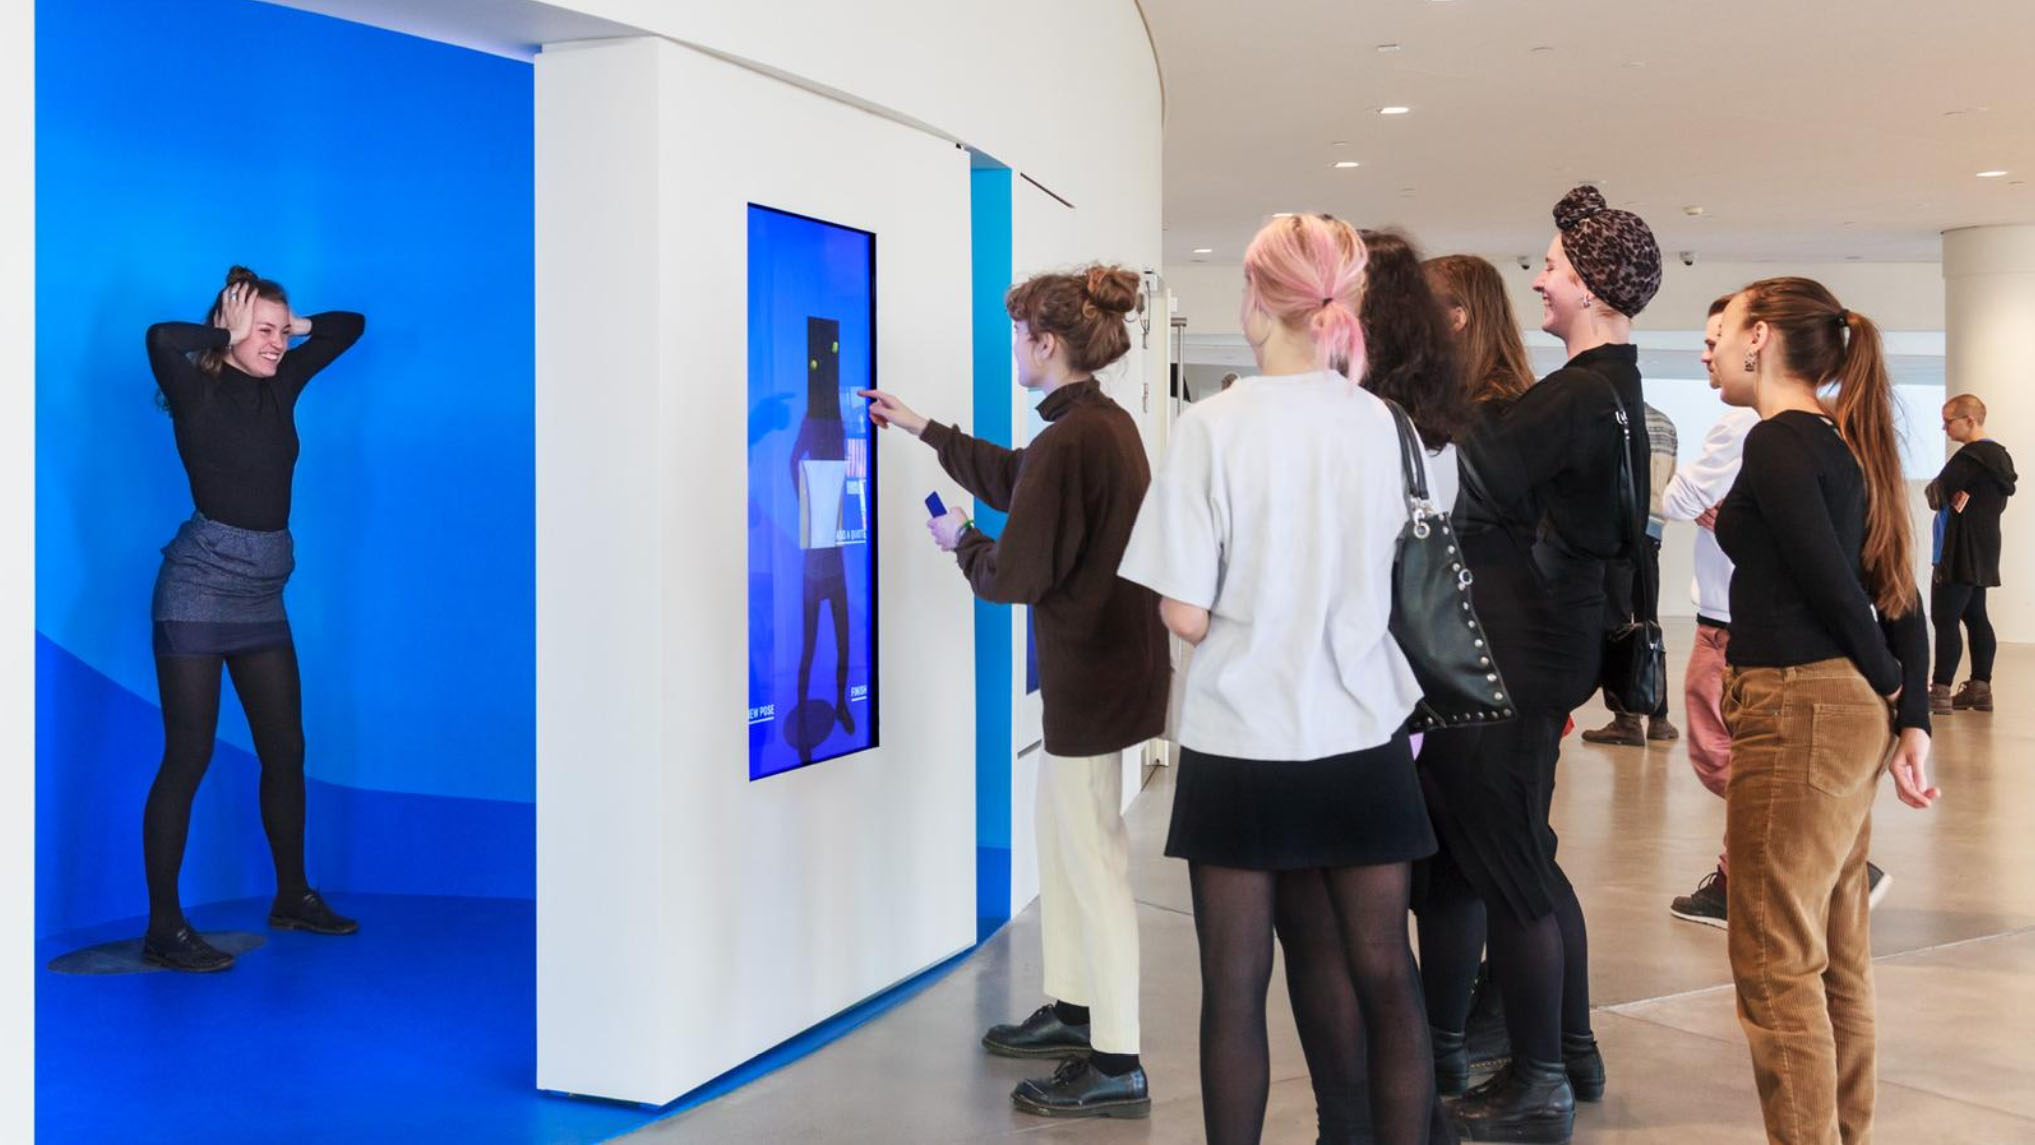 The Portrait Machine uses Kinects, cameras, OLED screens and the online collection of the museum to deliver unique collages based visitor poses.